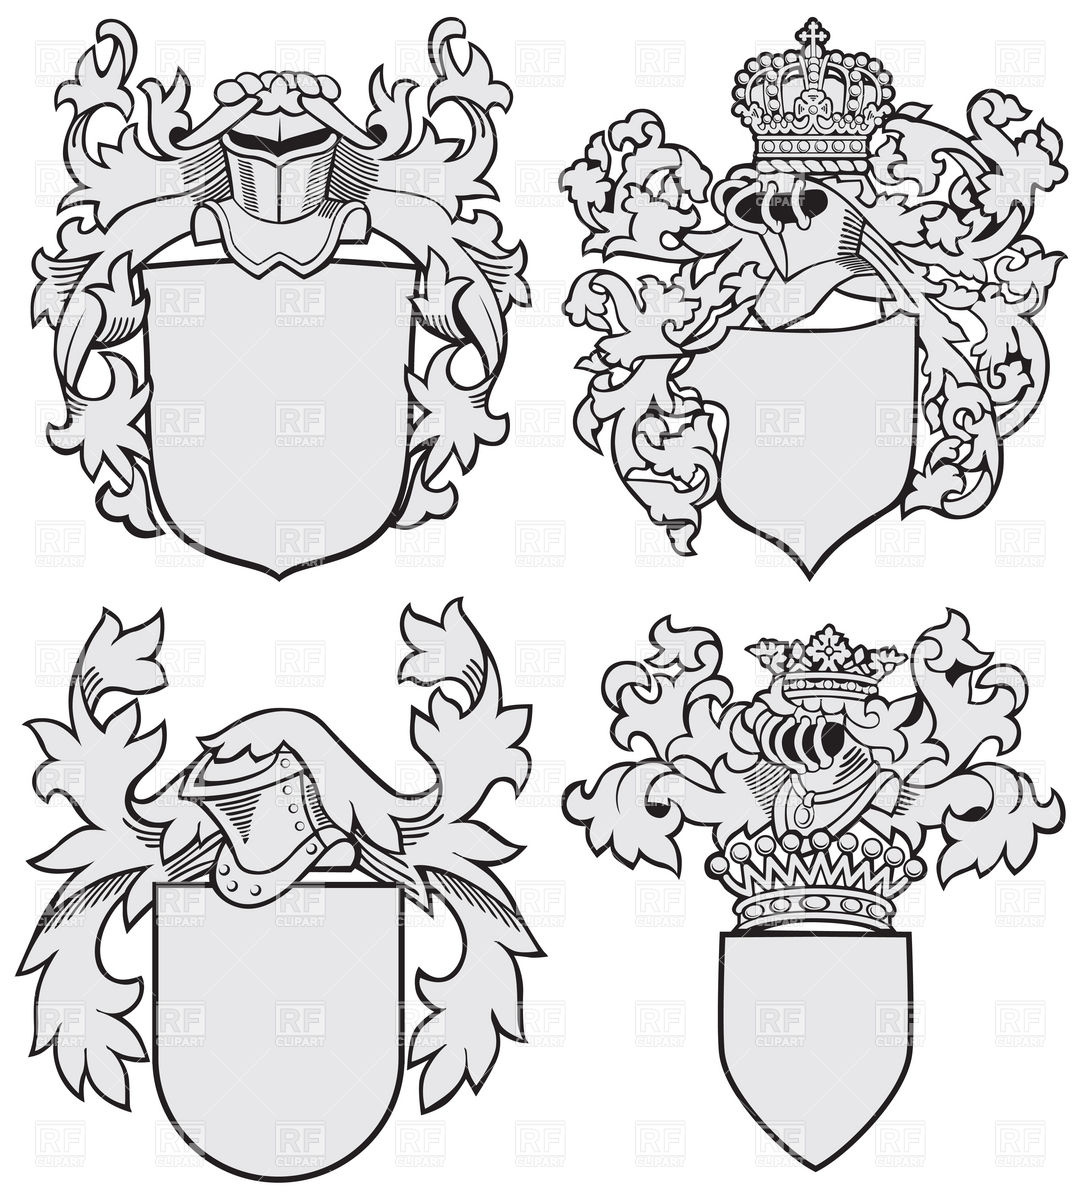 1083x1200 Coat Of Arms Template Lion Coat Of Arms Arms